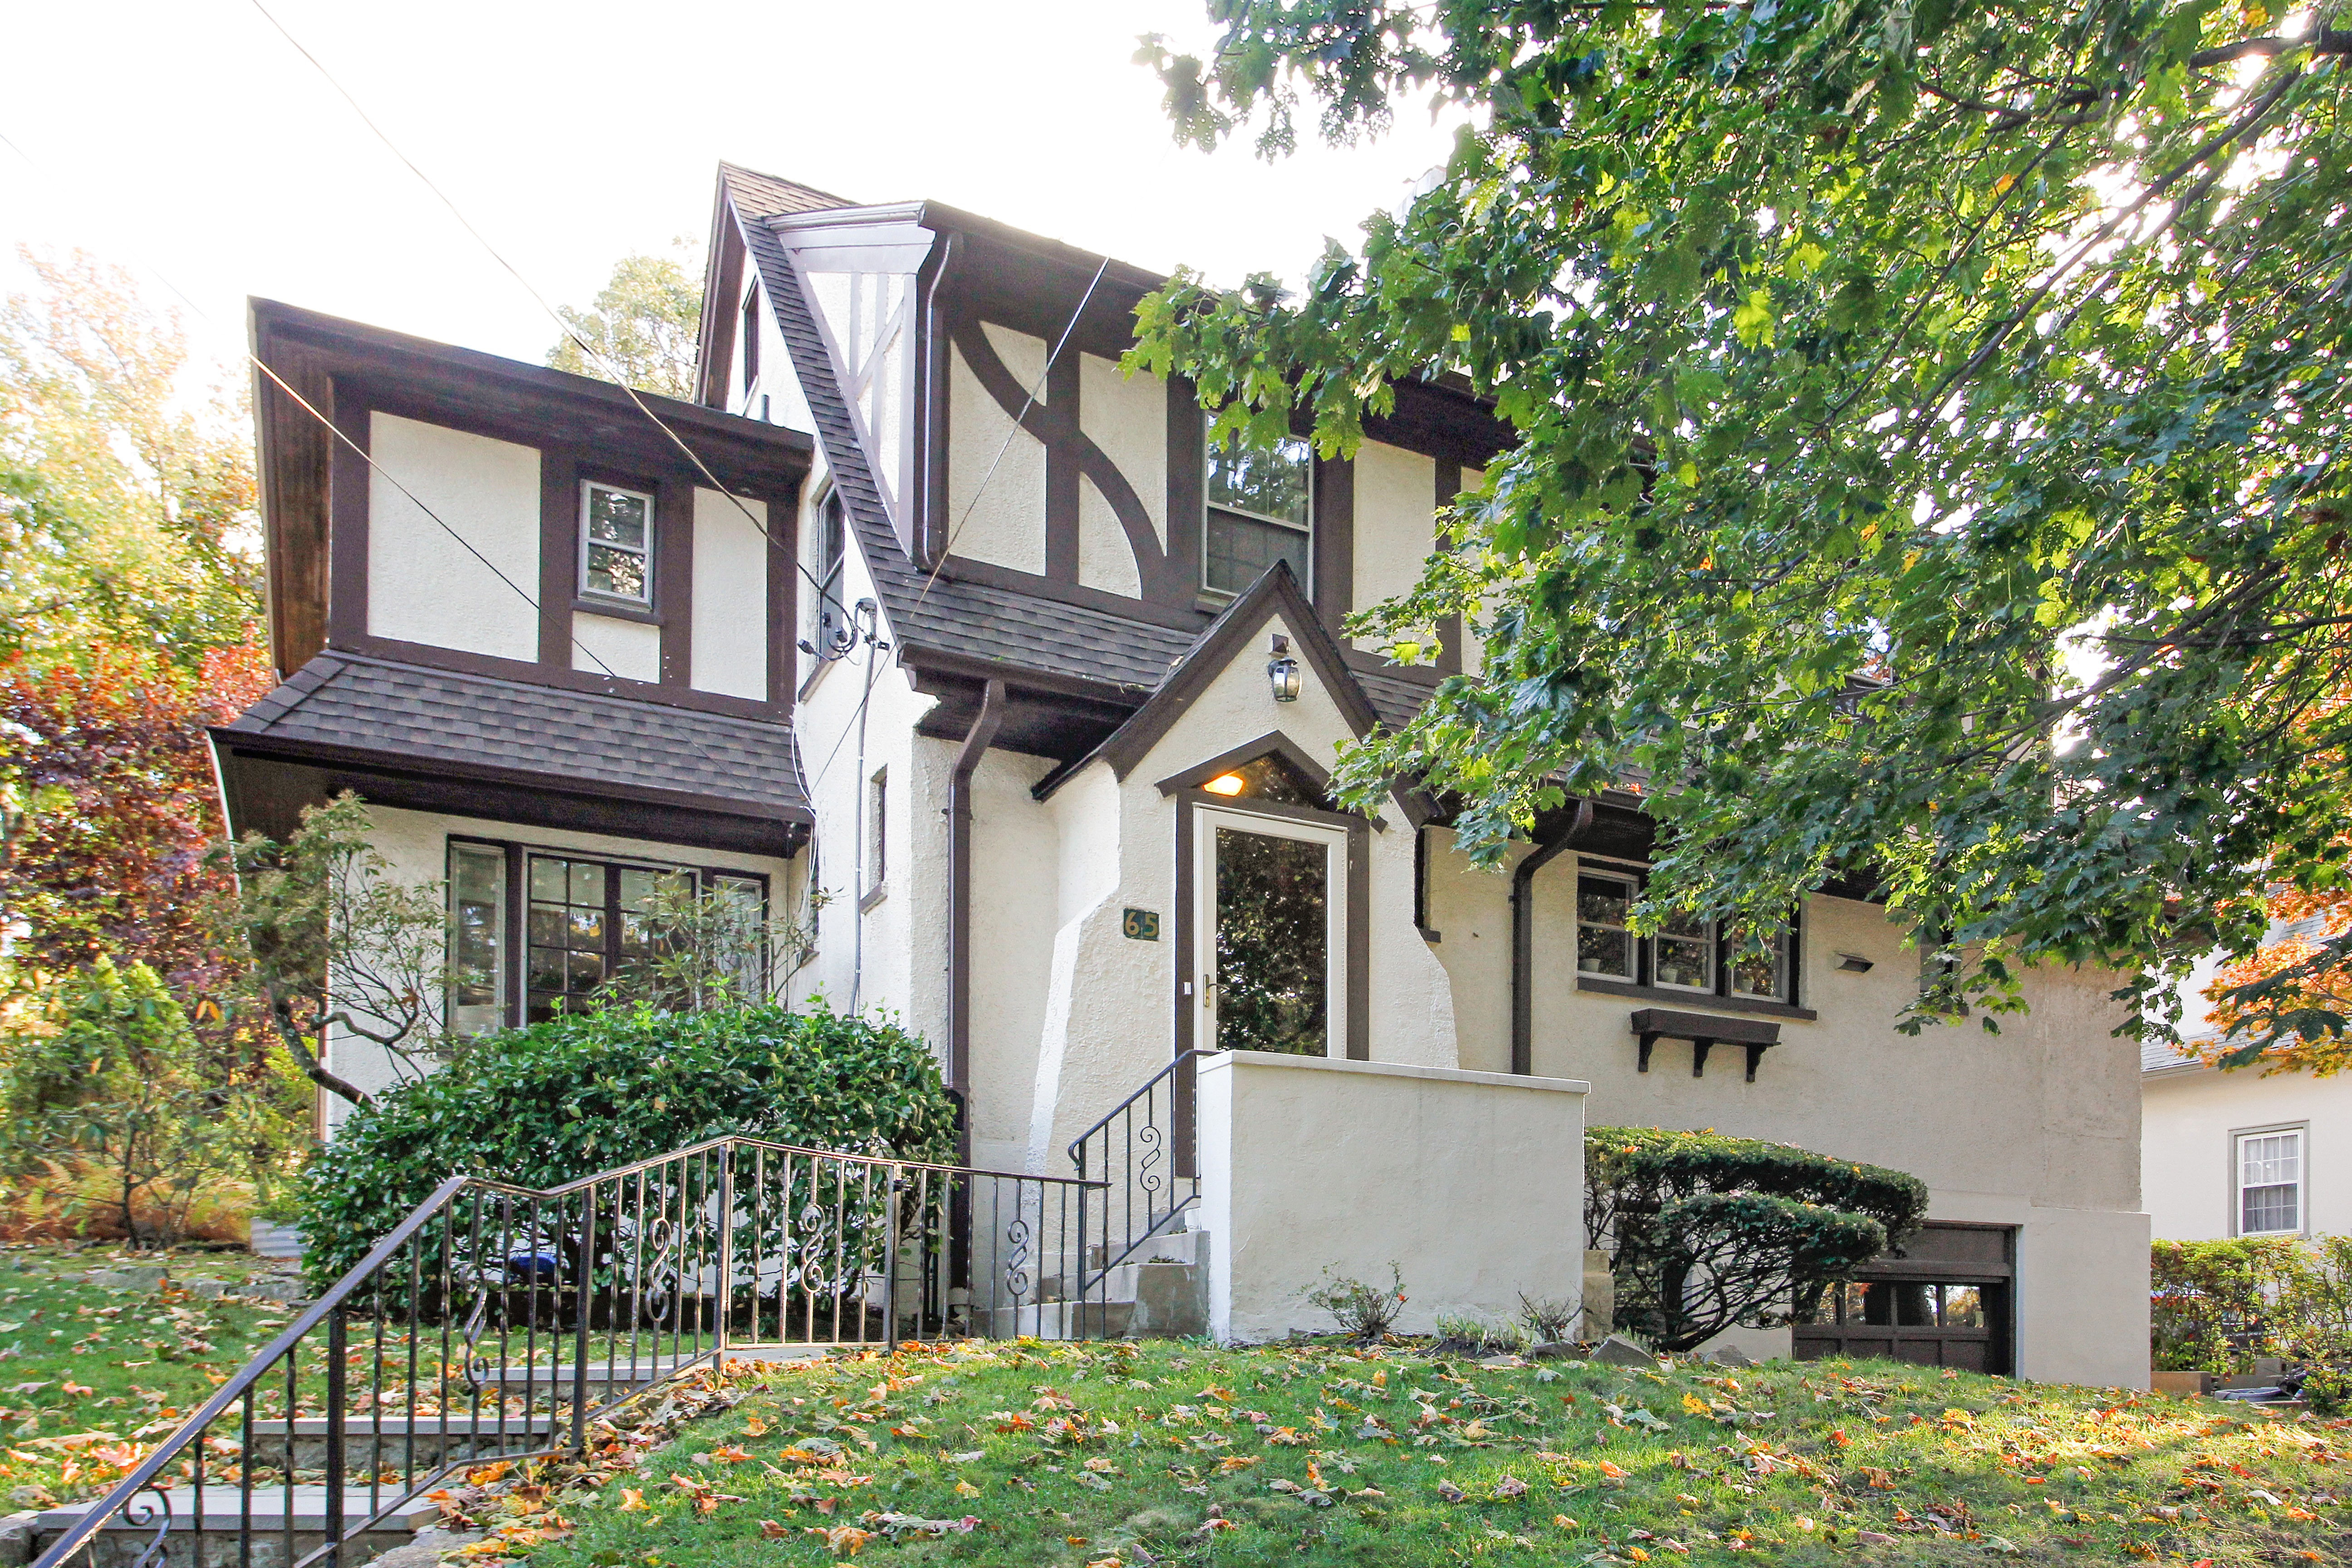 Single Family Home for Sale at Delightful Larchmont Woods Tudor 65 Wildwood Road New Rochelle, New York 10804 United States